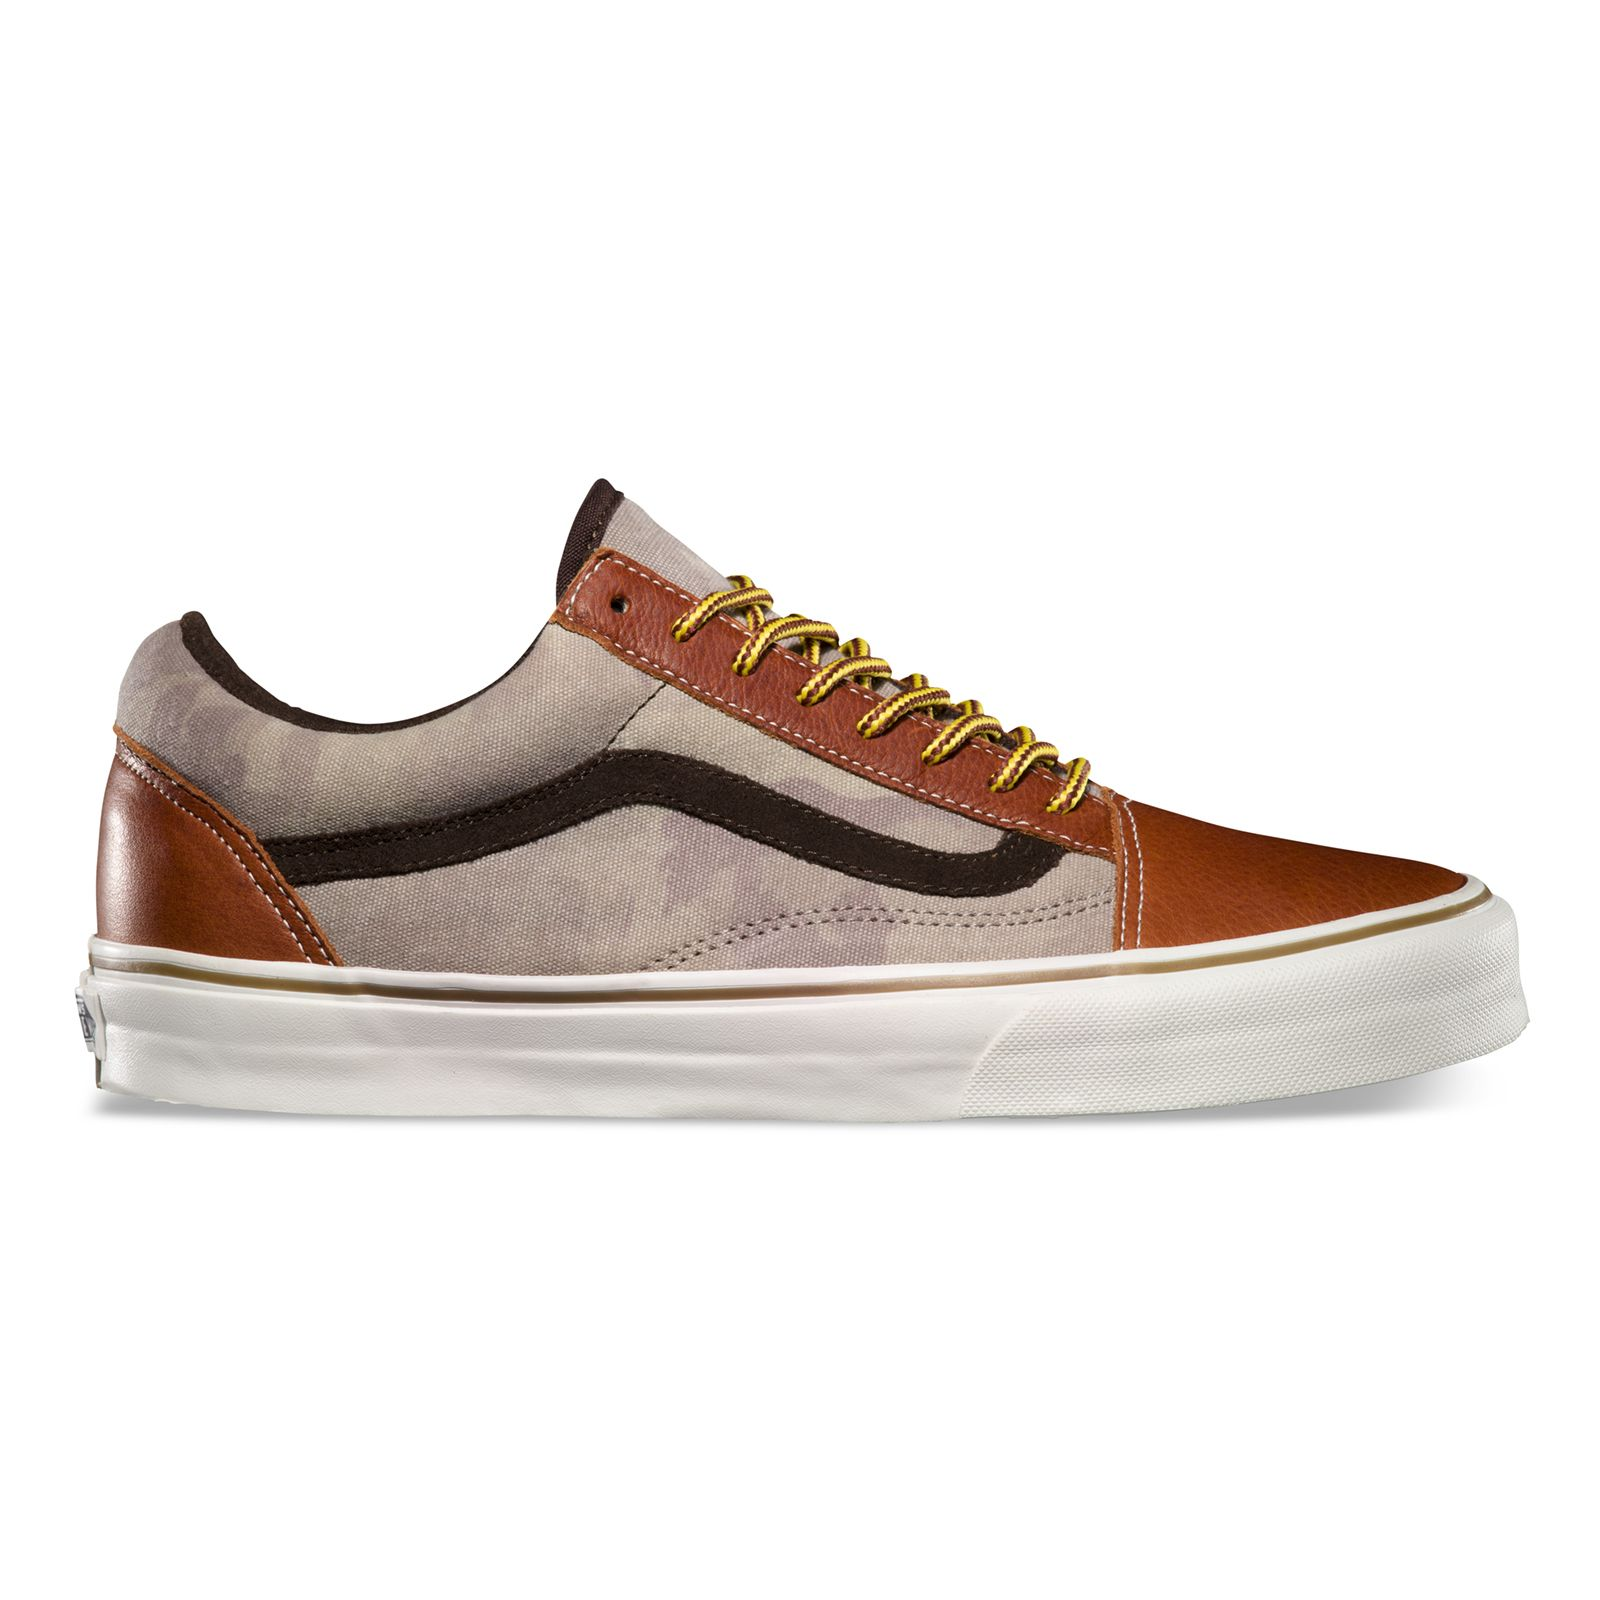 California Collection: Leather Old Skool Reissue CA: Henna